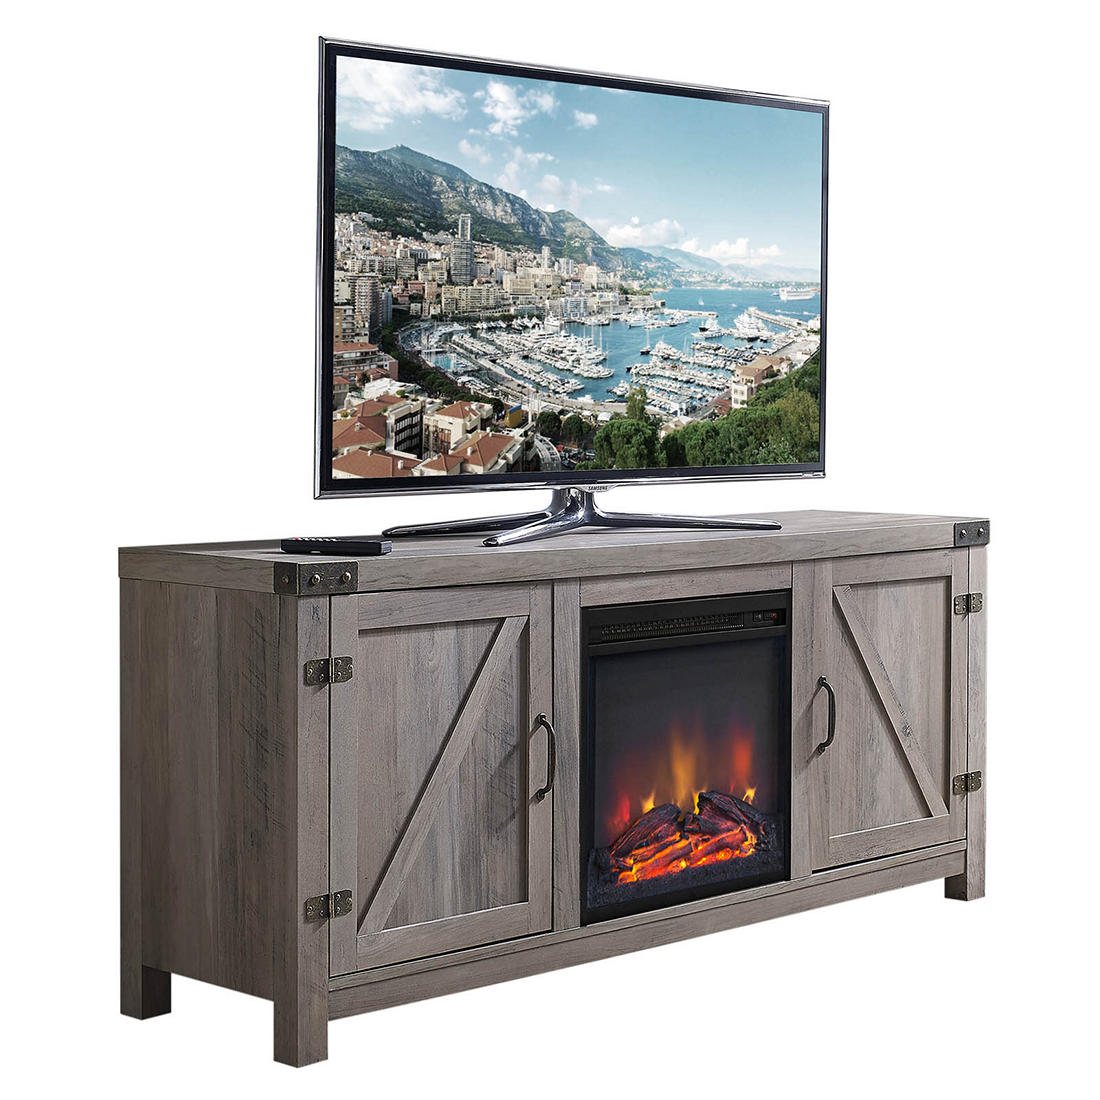 W Trends Emerson 58 Fireplace Tv Stand For Tvs Up To 65 Grey